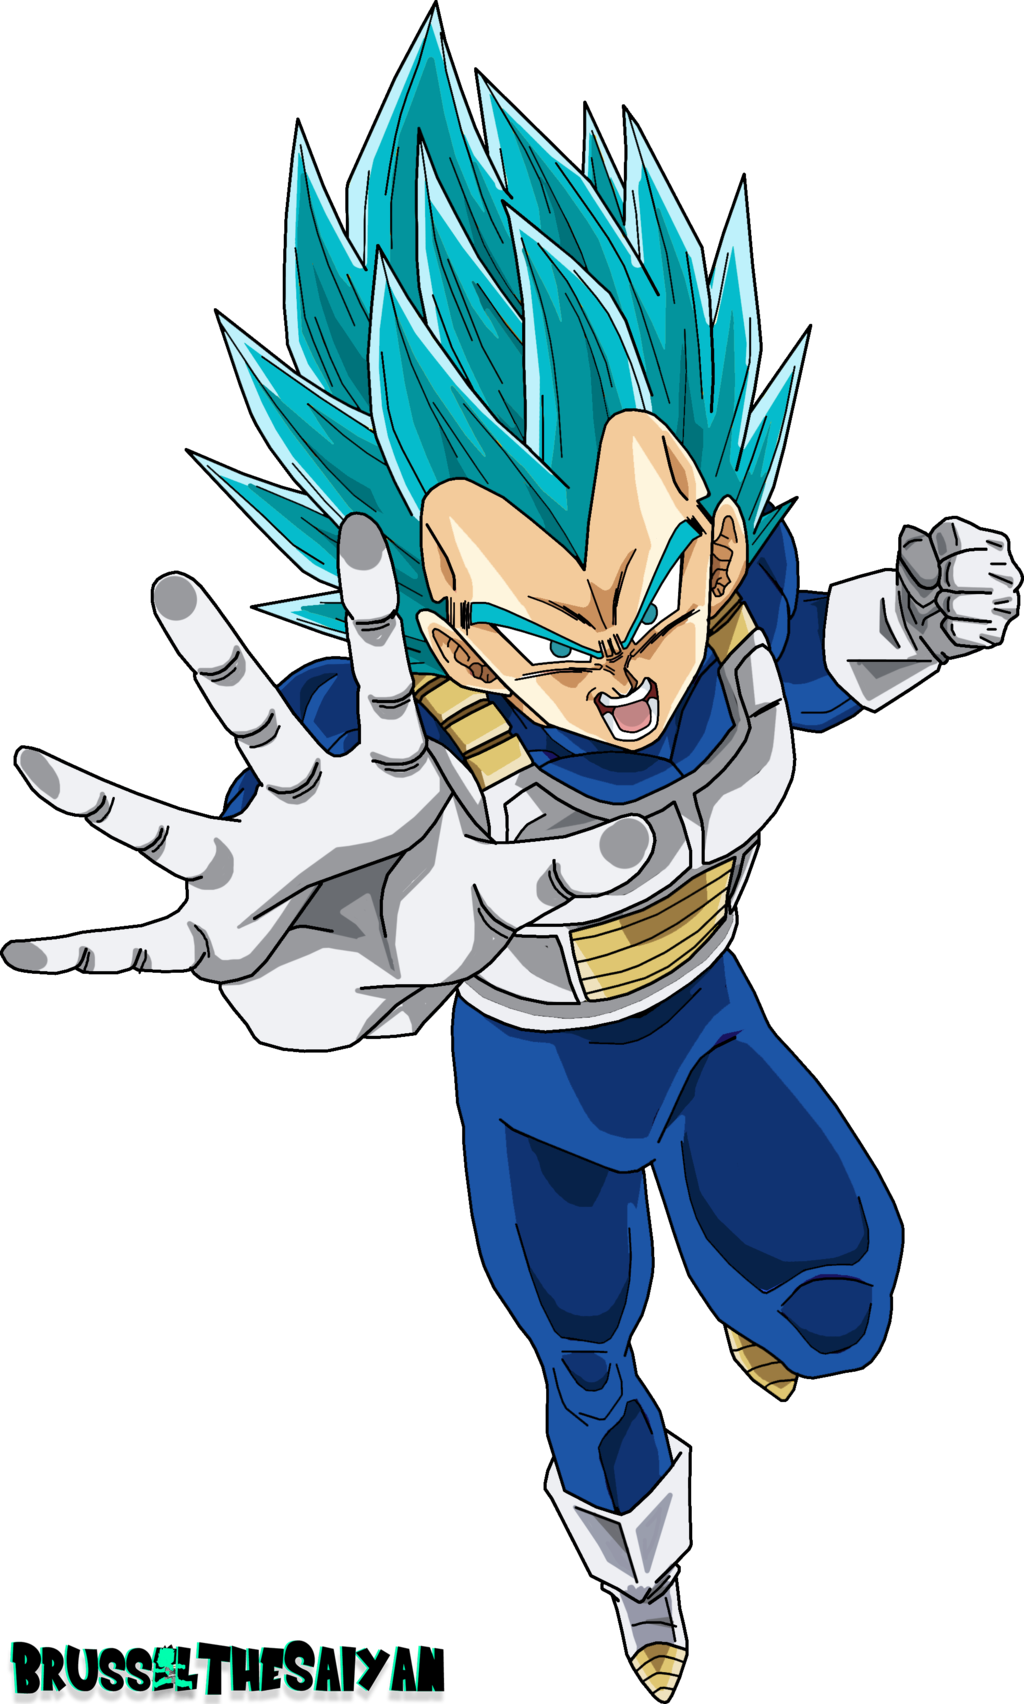 Blue wallpapers wallpaper cave. Vegeta vector super saiyan god picture stock